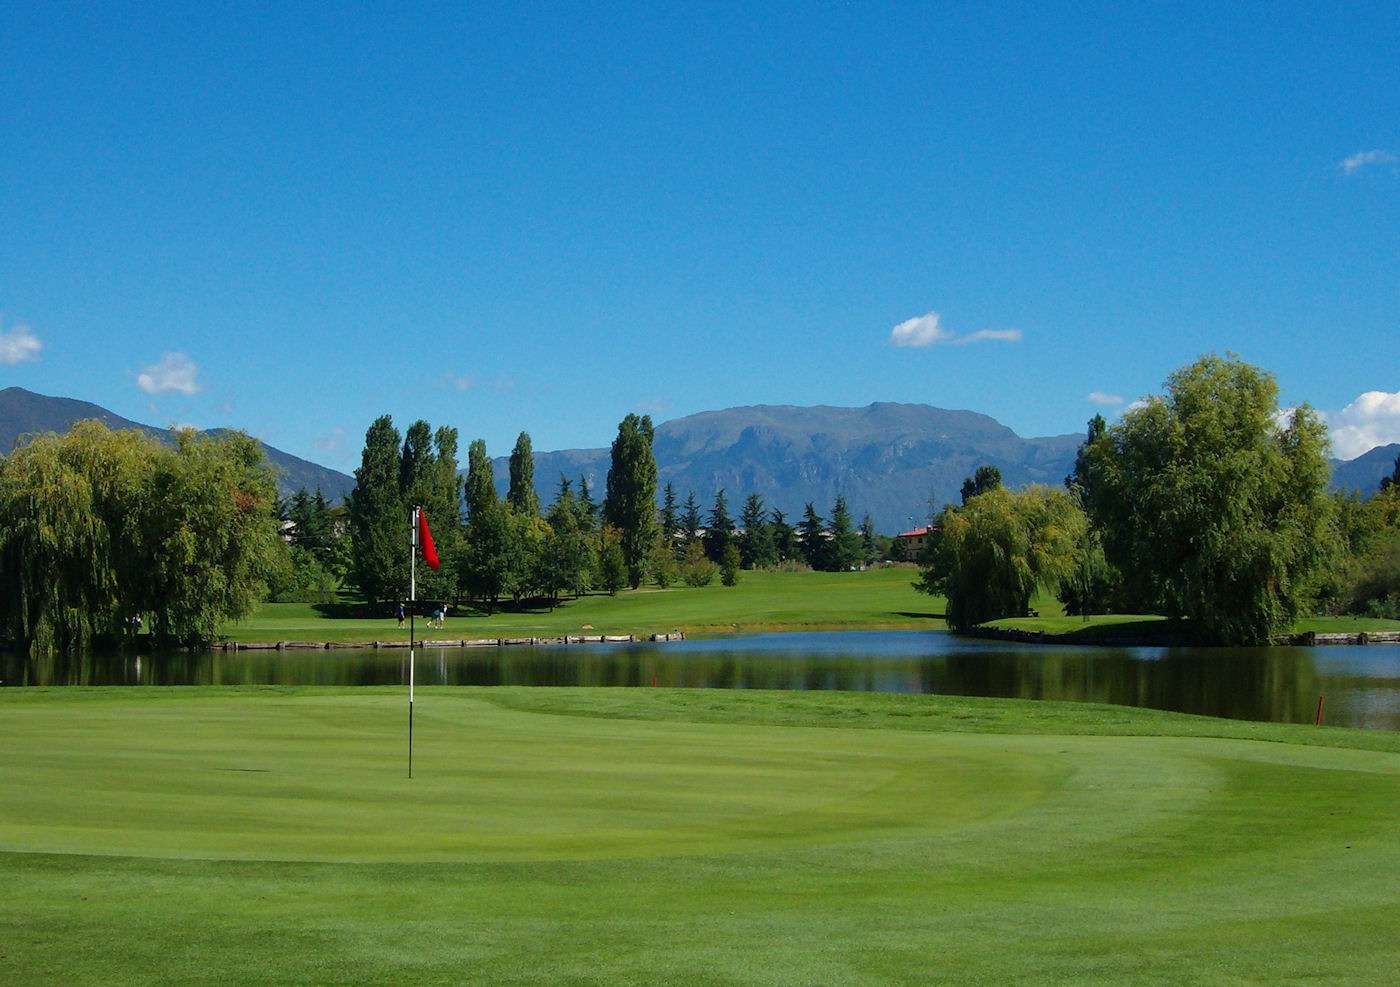 Golf course with mountain views